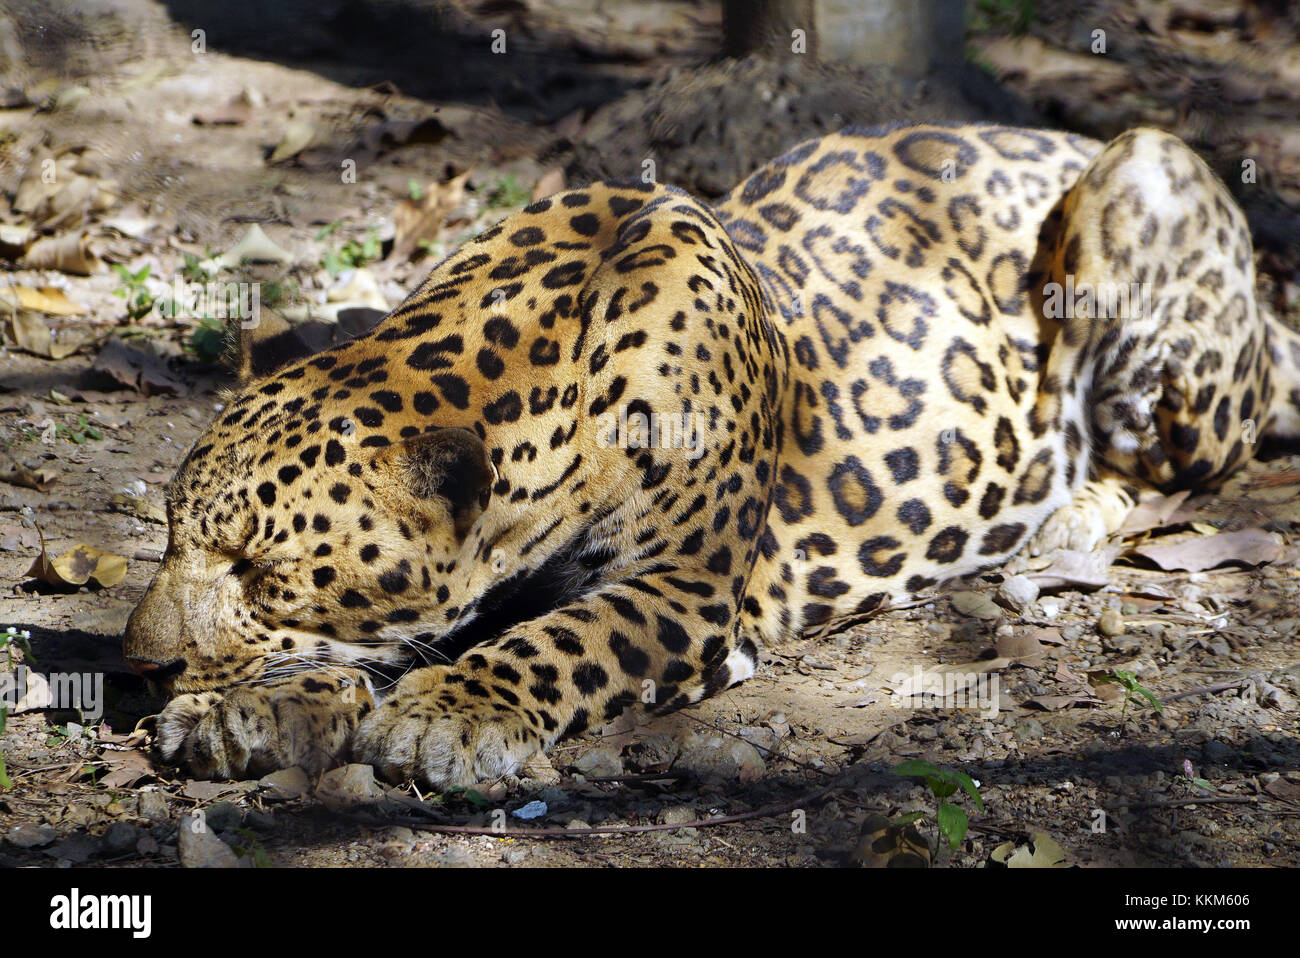 The Jaguar (Panthera onca) in resting pose. - Stock Image